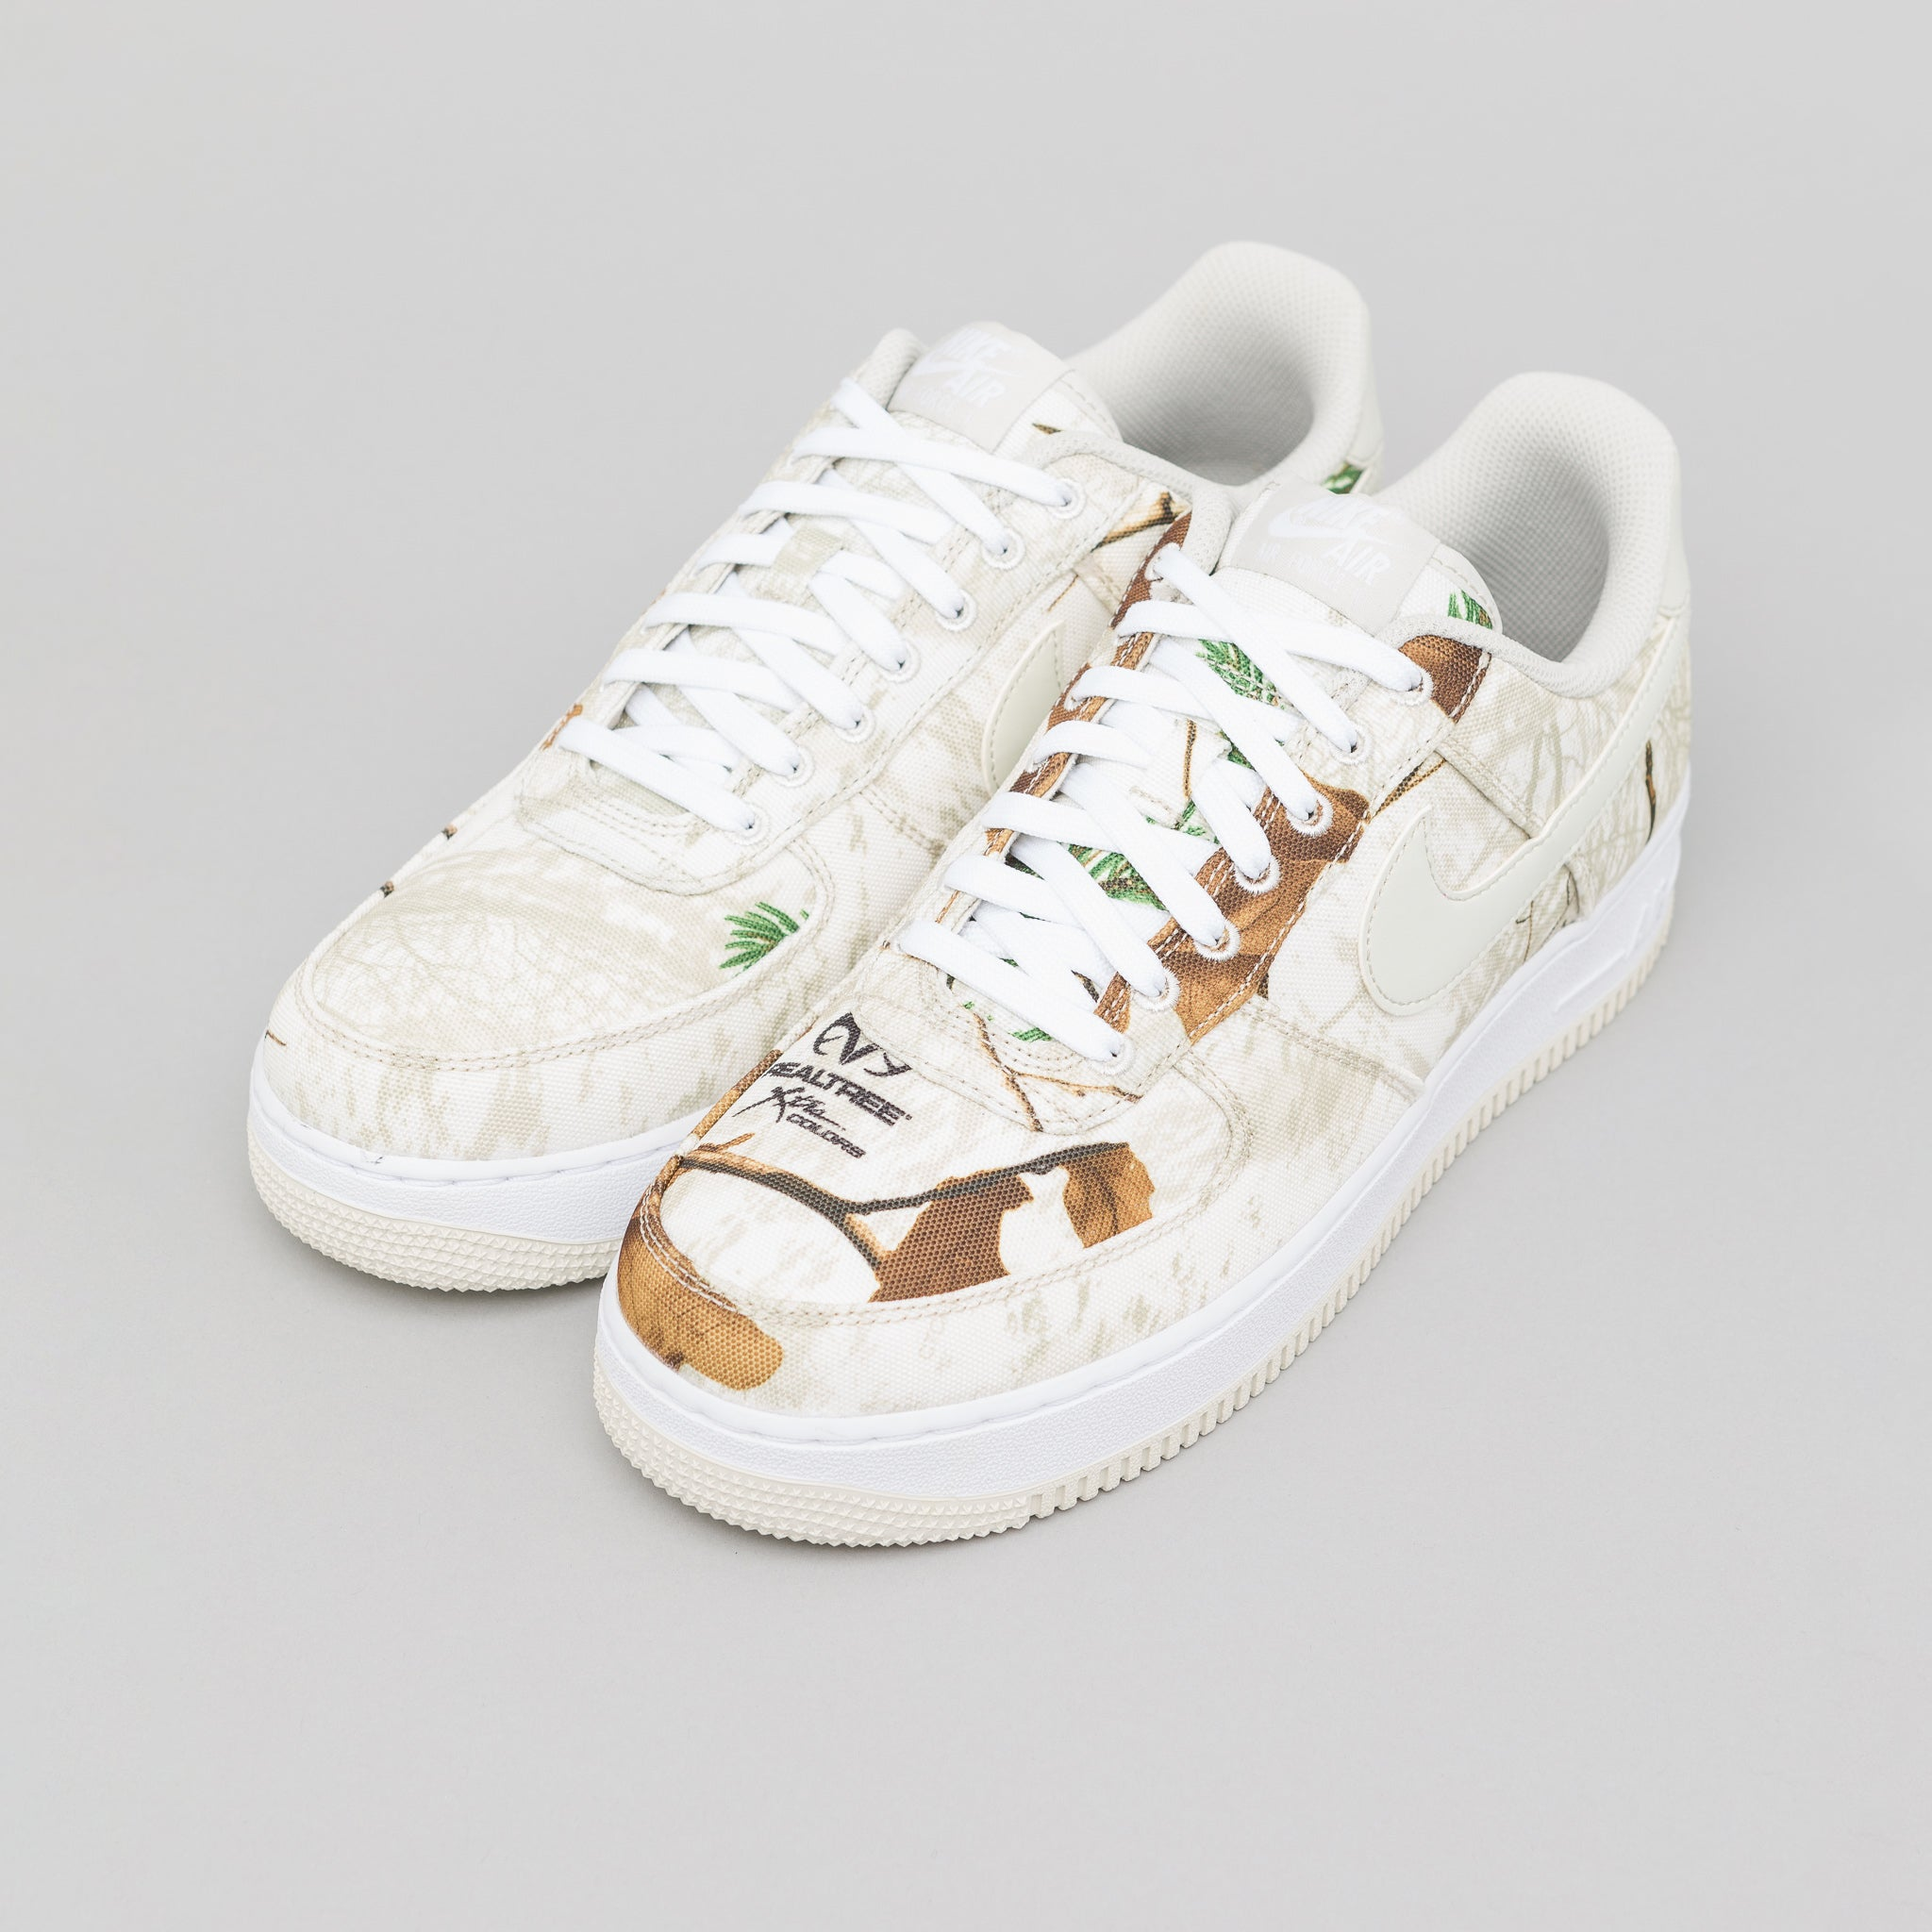 detailed look a3381 d5abe Air Force 1 07 LV8 3 in White Light Bone